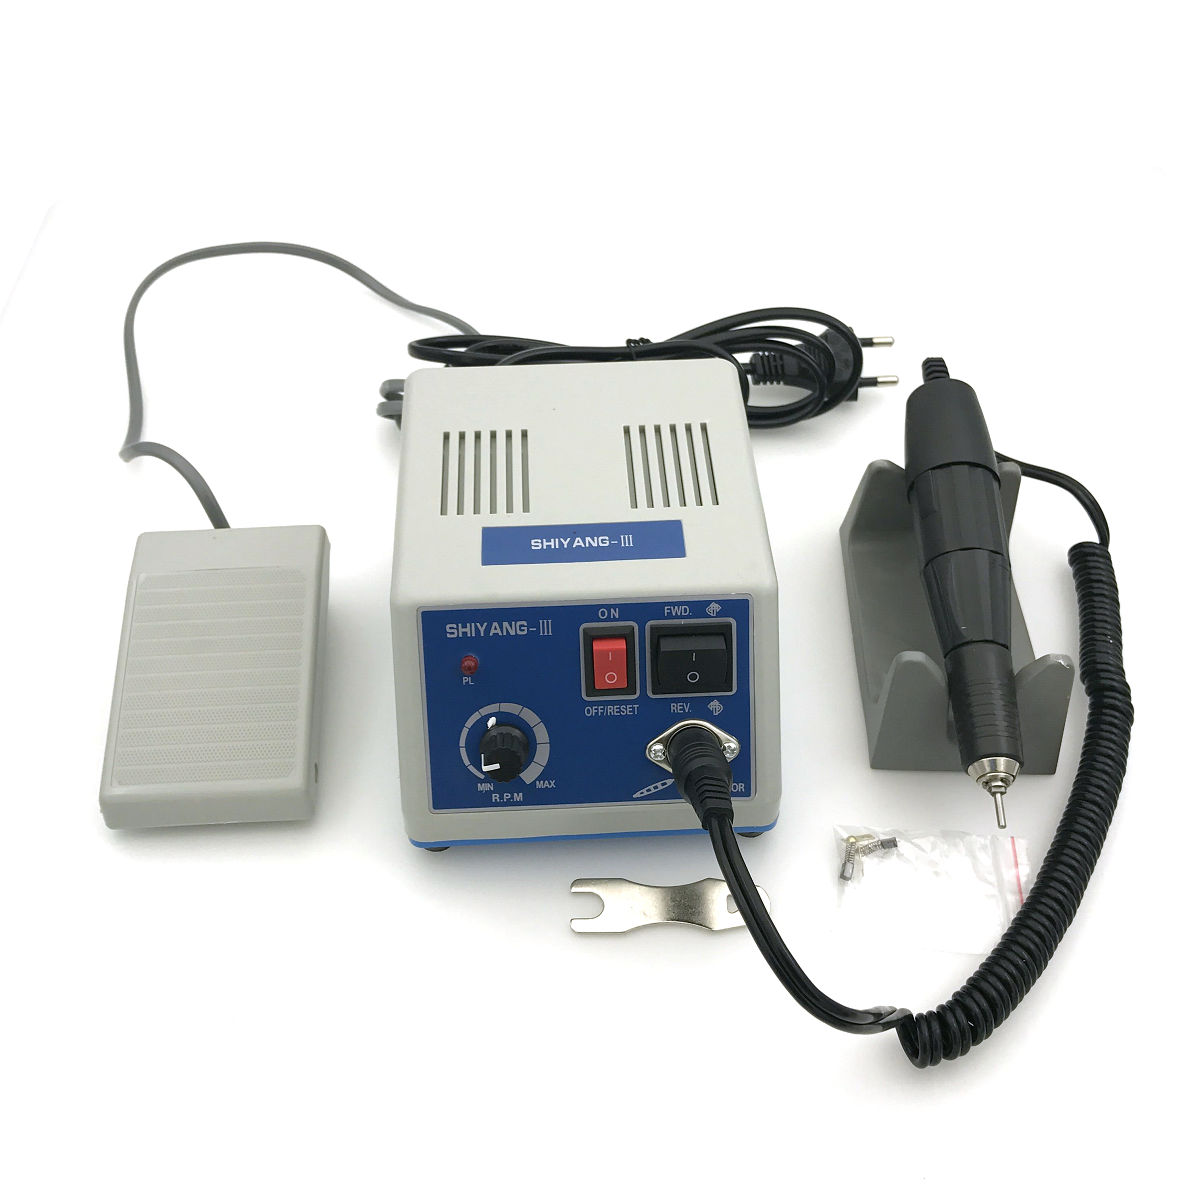 Dental Lab SHIYANG Micromotor Machine N3 + 35K RPM Polishing Handpiece 110V dental lab marathon handpiece 35k rpm electric micromotor polishing drill burs